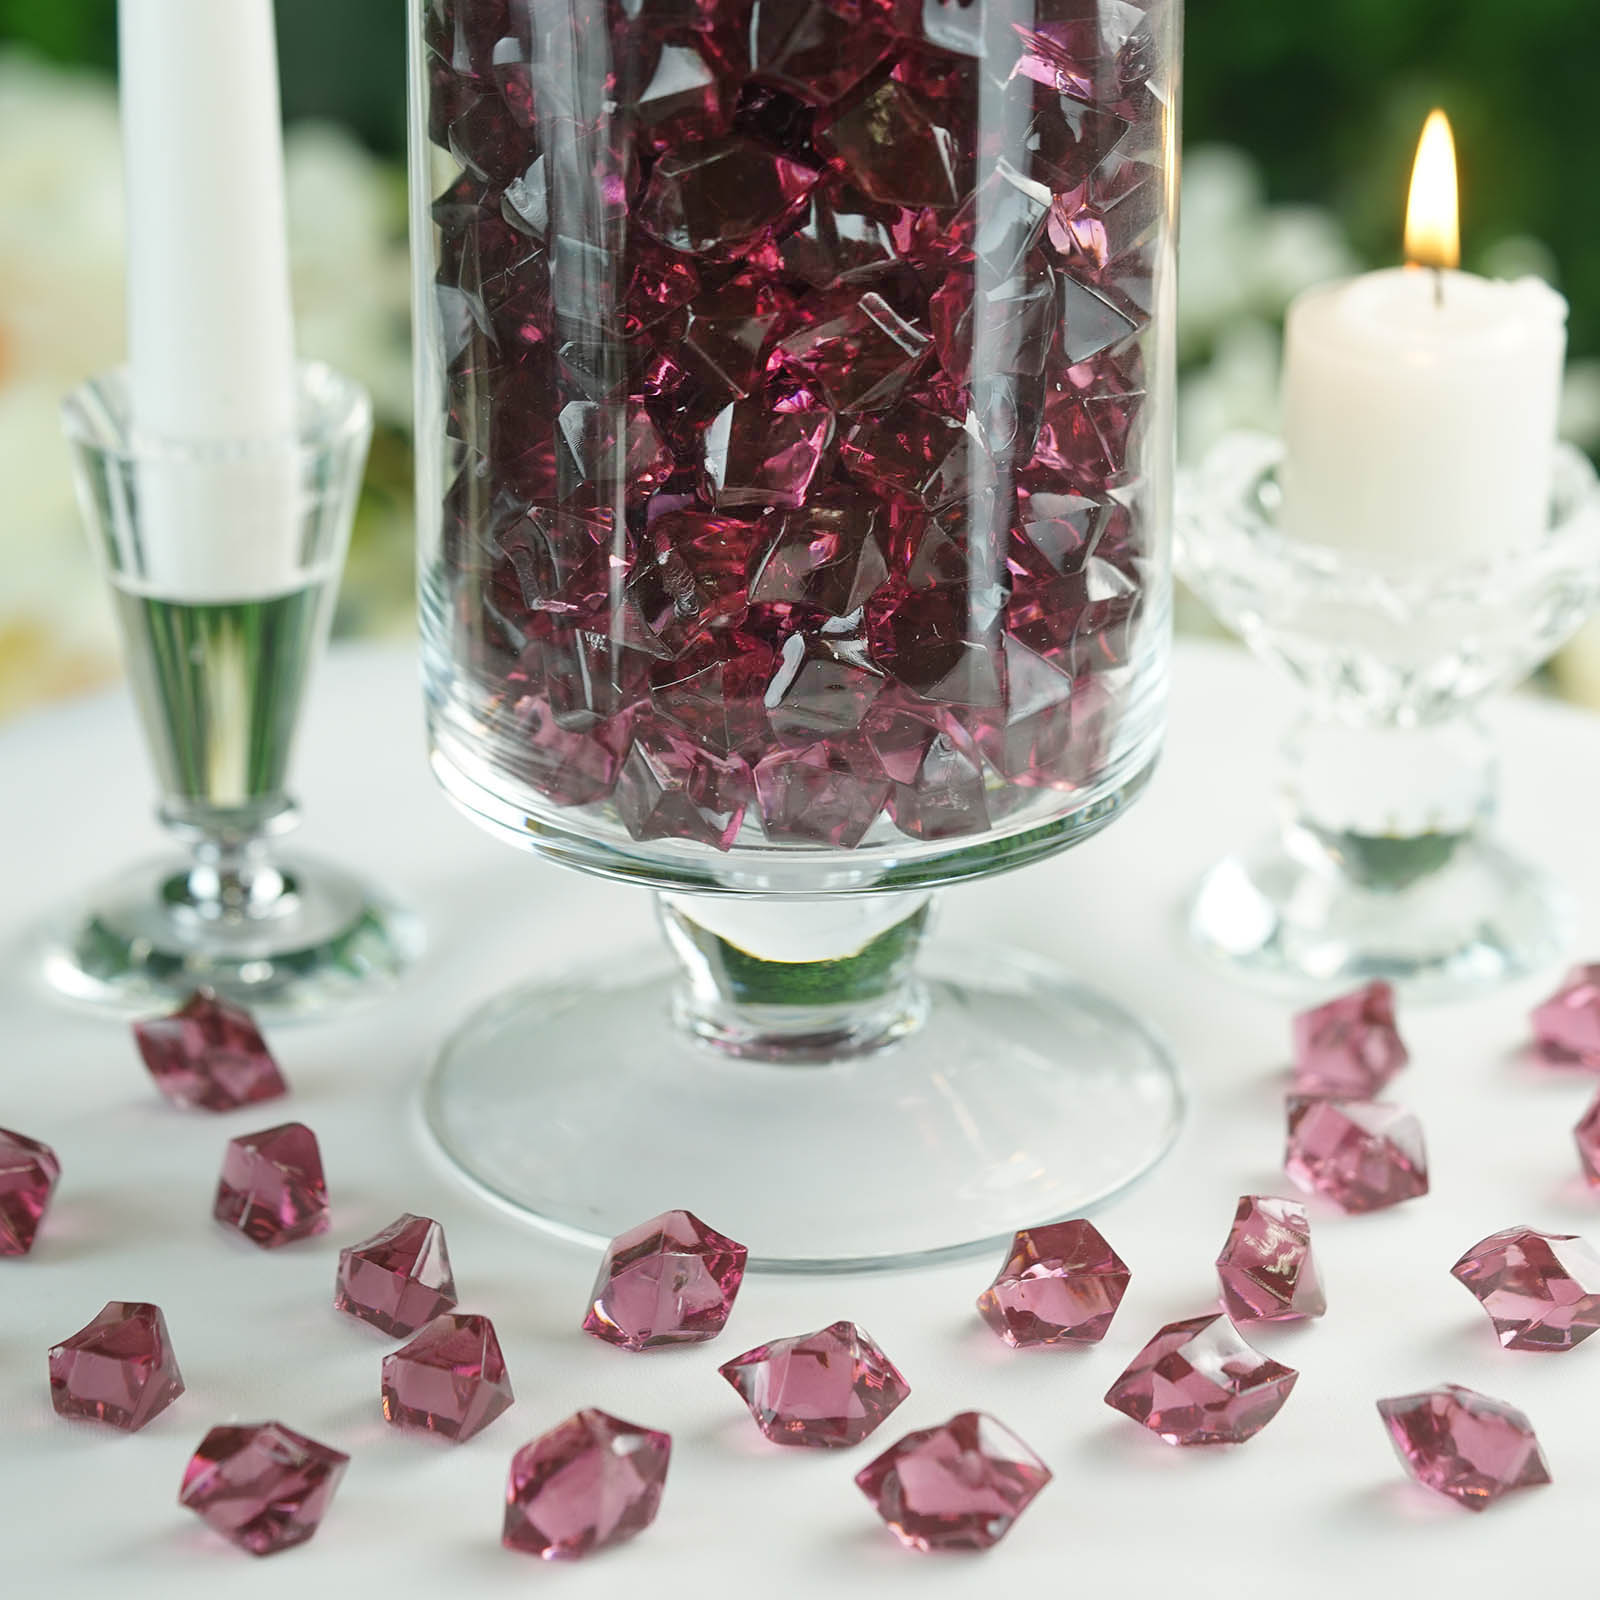 300-Acrylic-Ice-CRYSTAL-LIKE-Pieces-Wedding-Centerpieces-Decorations-Supplies thumbnail 27